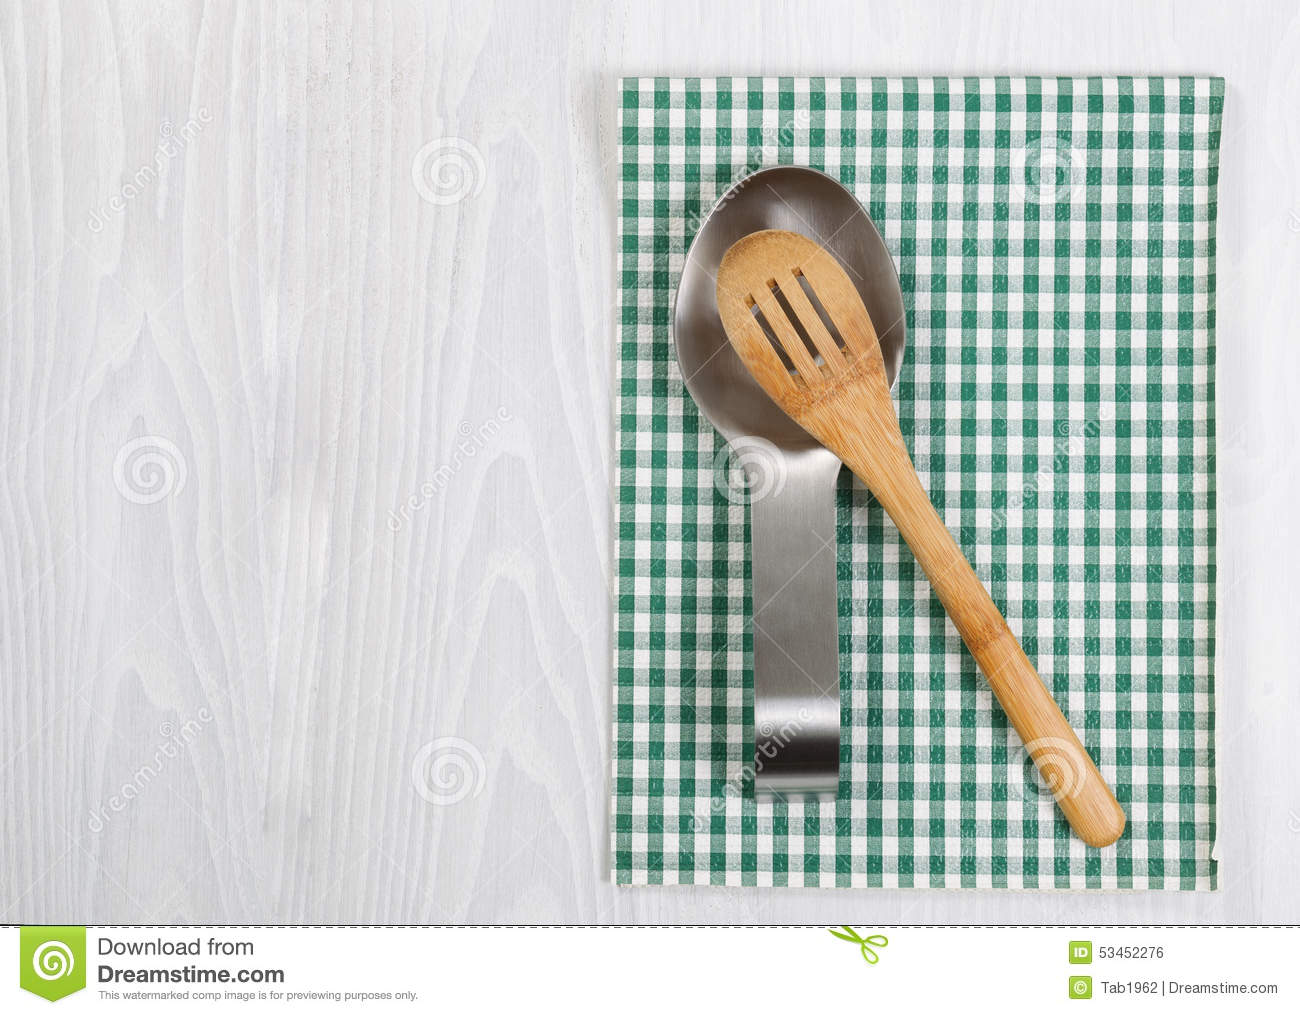 Traditional Wooden Spoon And Spoon Holder Stock Photo - Image of ...